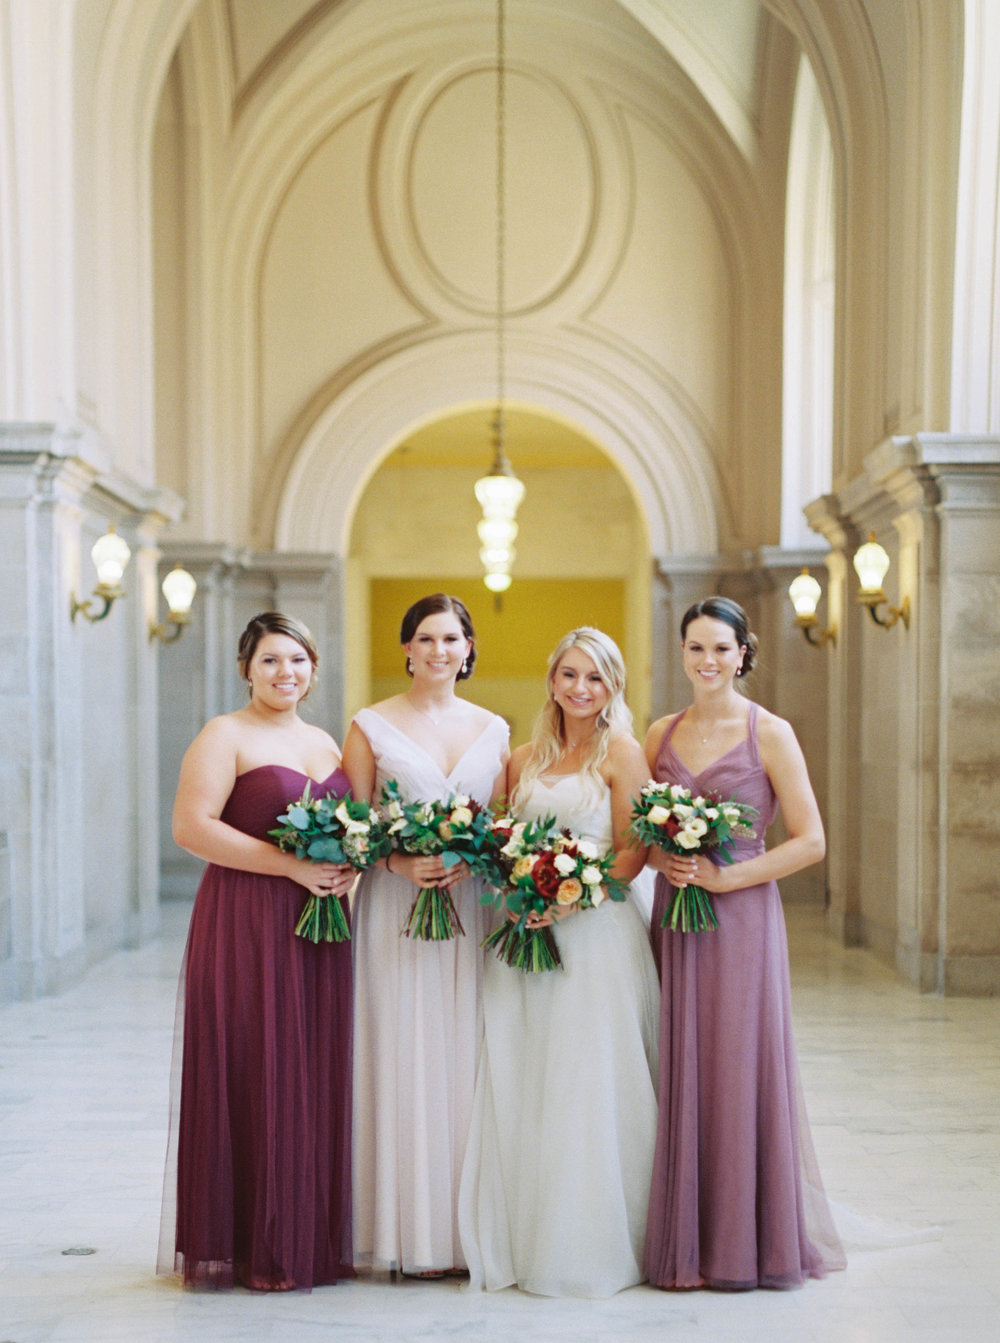 DennisRoyCoronel_Photography_SanFranciscoCityHall_Wedding-25.jpg